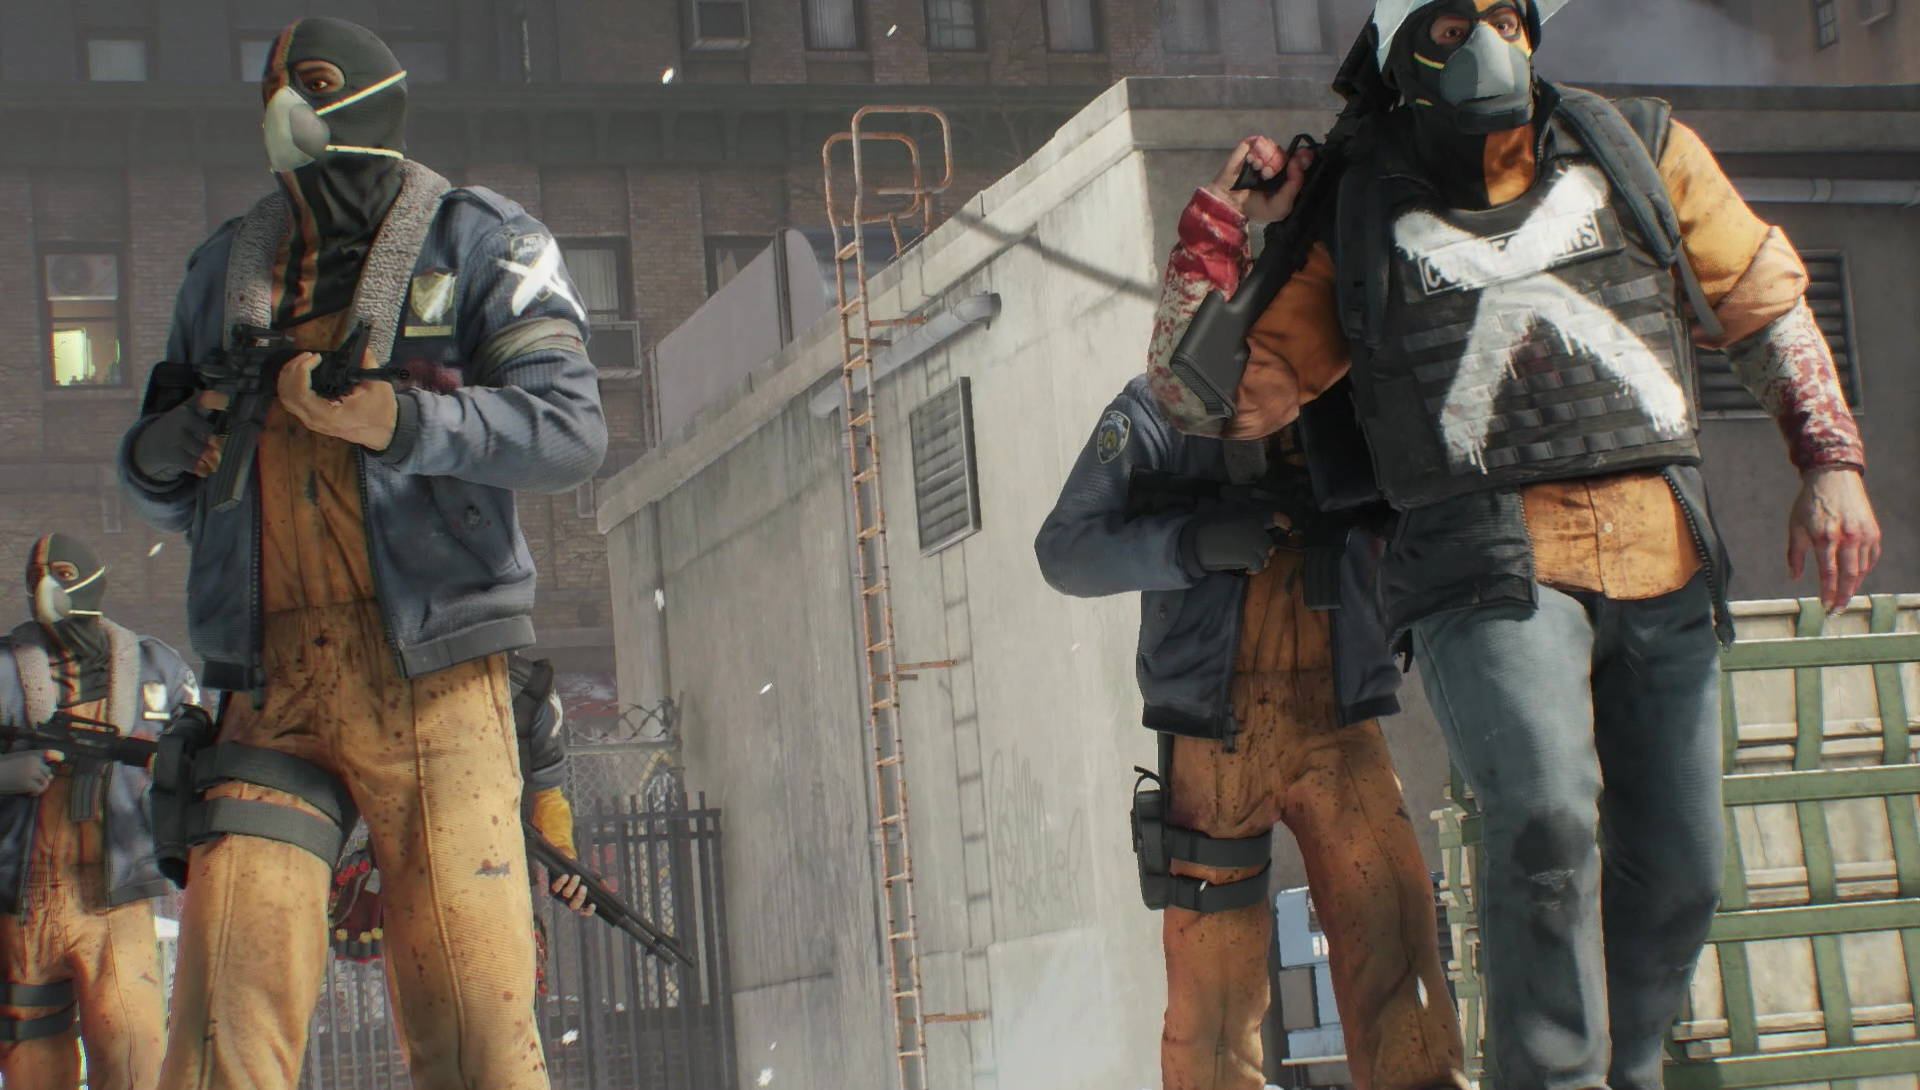 tomclancysthedivision_conflictscreens2_0015